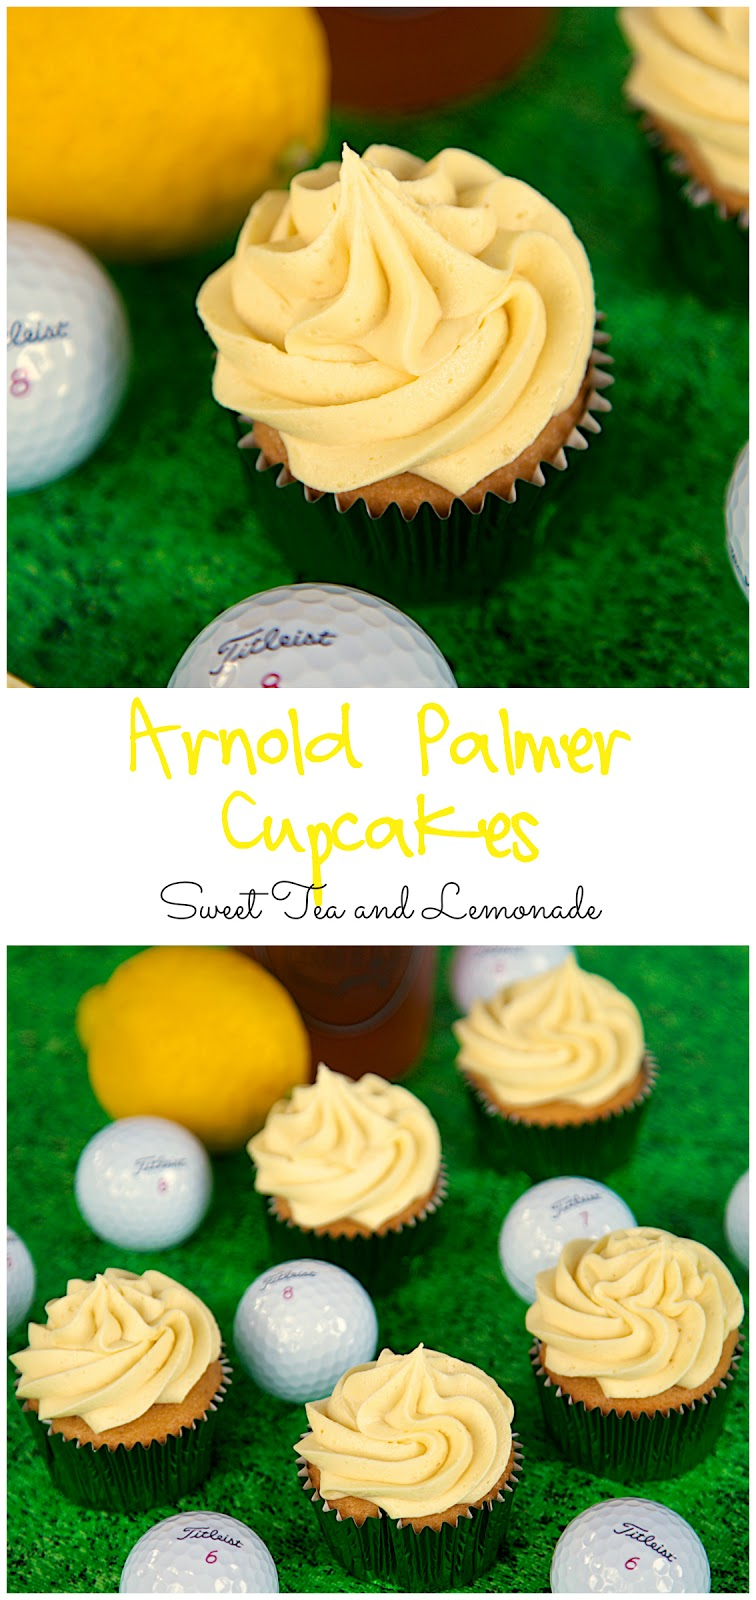 Arnold Palmer Cupcakes Recipe - Iced Tea and Lemonade cupcakes and buttercream. SO good!! Perfect for watching The Masters.